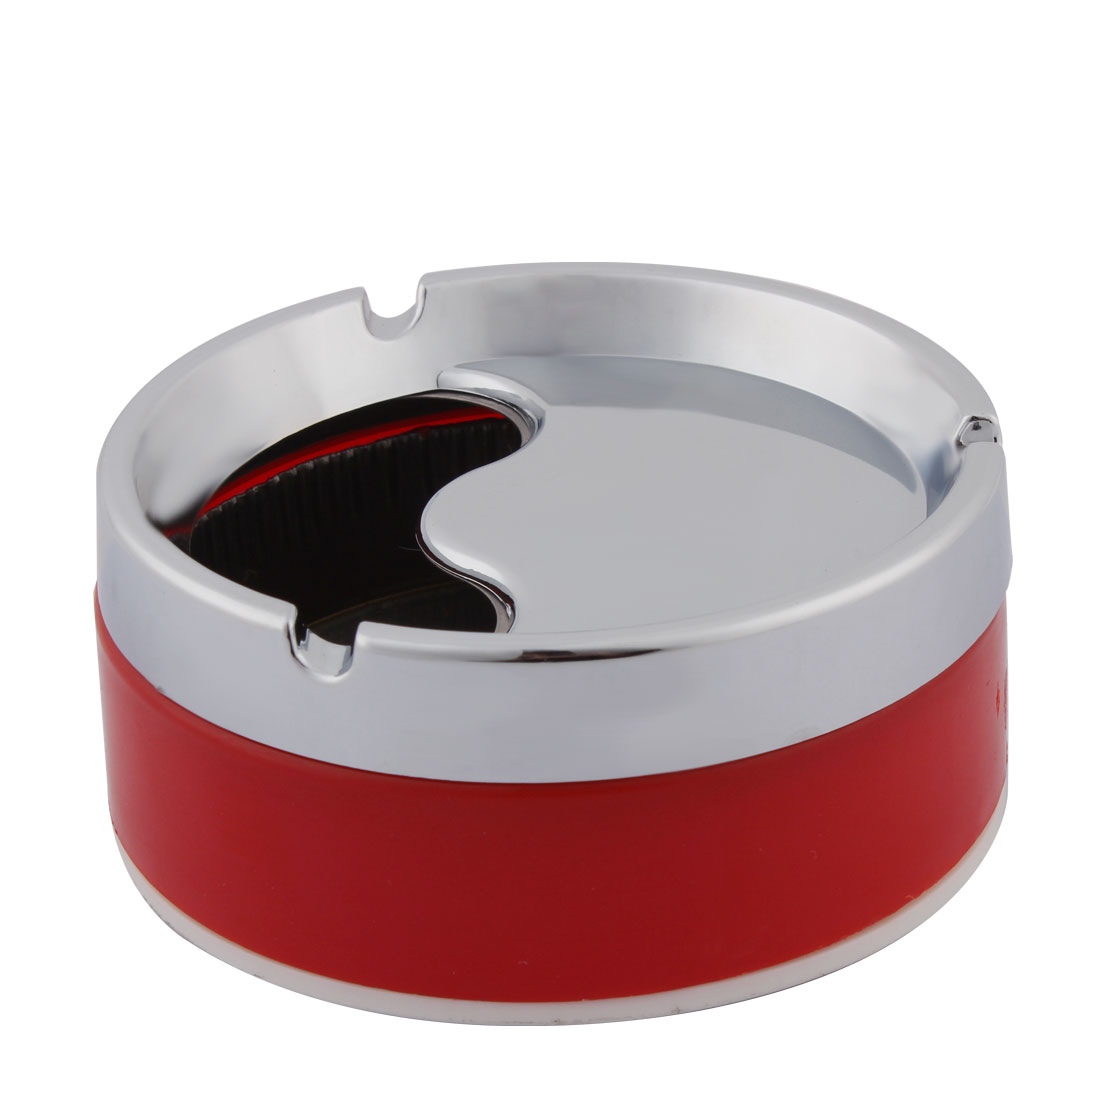 Home Office Cylinder Shape Rotatable Cigarette Holder Case Ashtray  Container Red